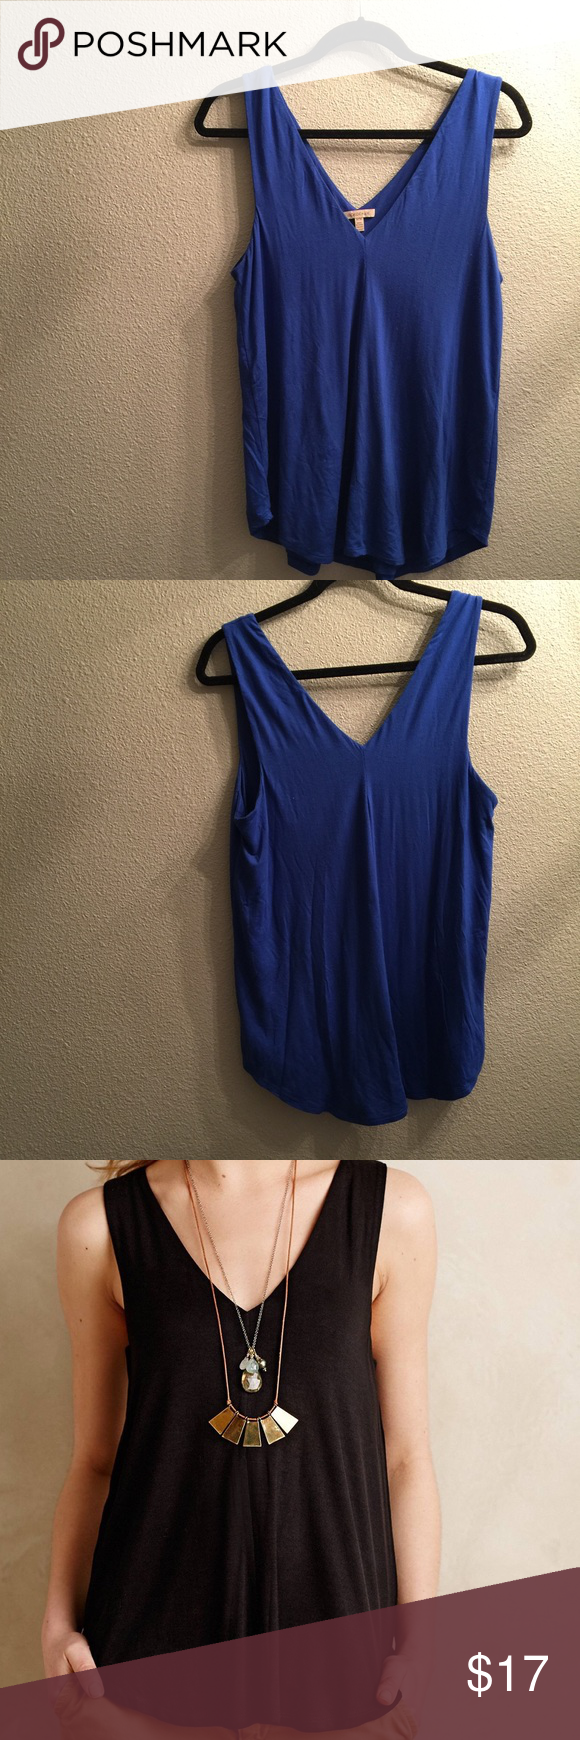 50122b21e4 Anthropologie - Bordeaux Double-v Swing Tank Anthropologie - Bordeaux Double -v Swing Tank